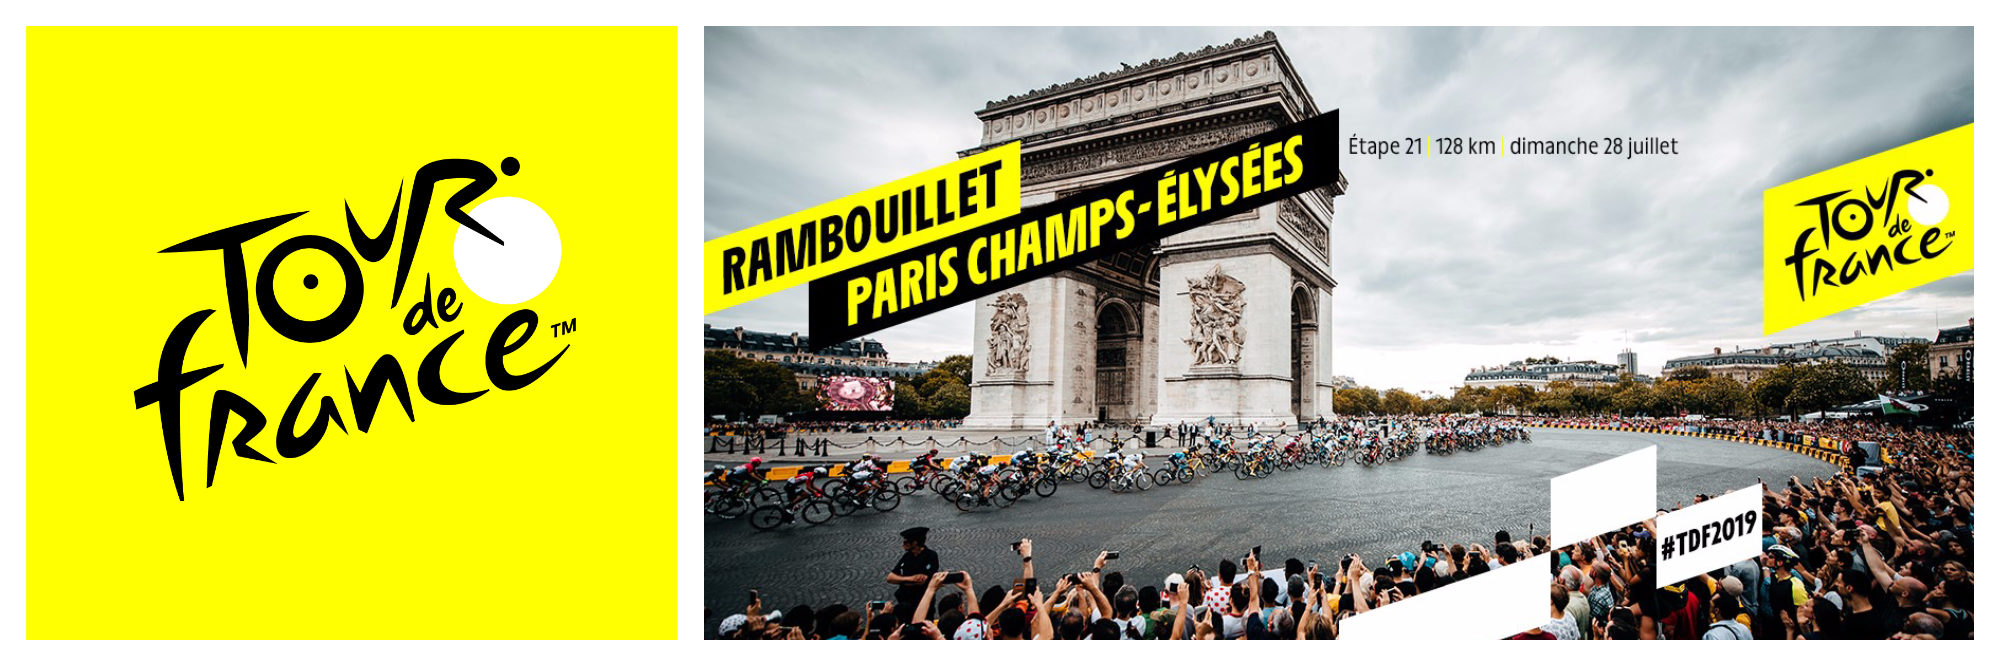 The logo of this year's Tour de France (left) and the crowds that have gathered around the Arc de Triomphe in Paris to cheer on the cyclists as they set off (right).